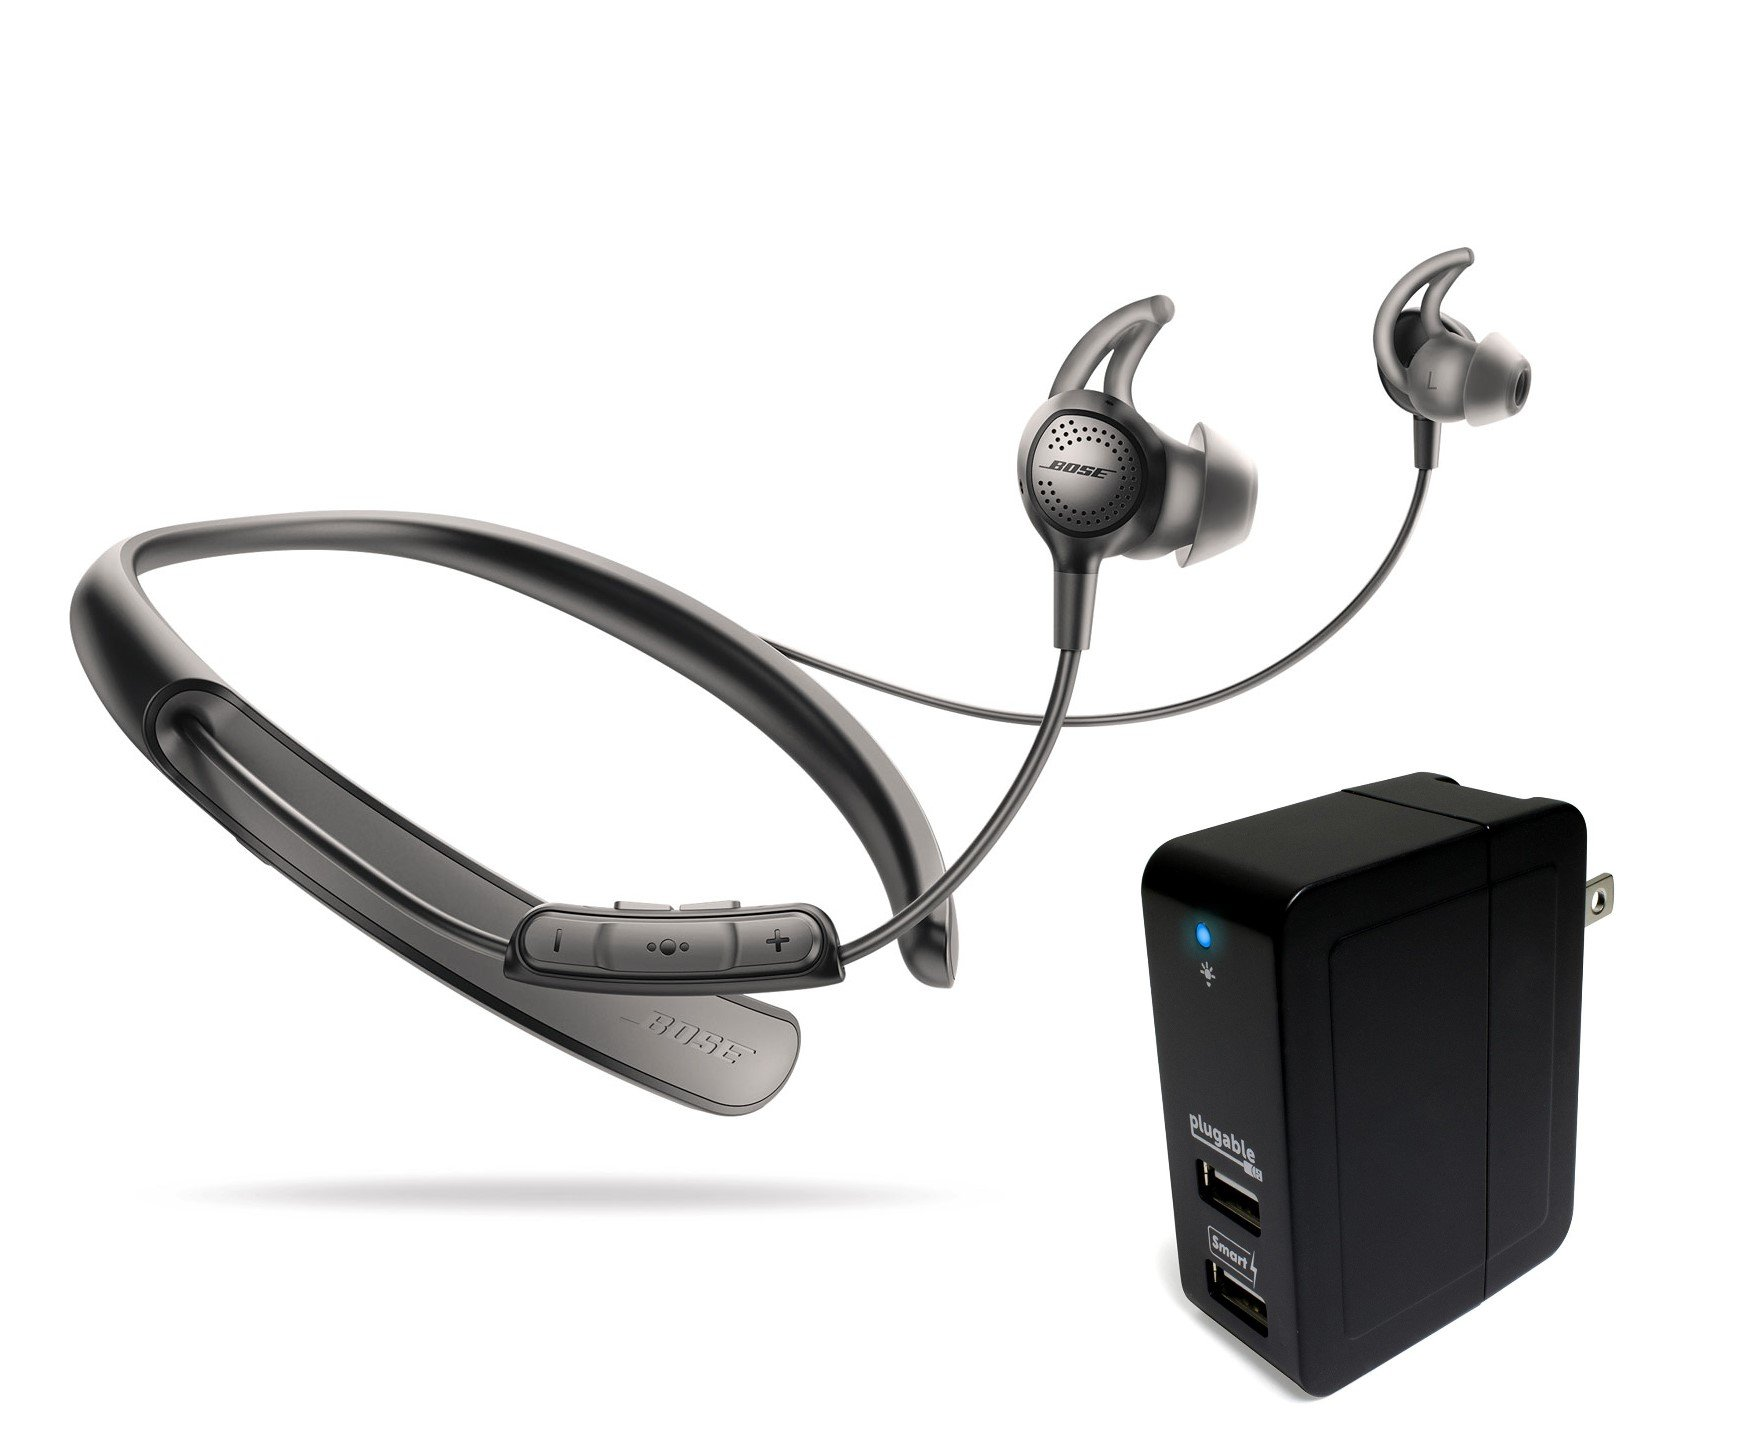 Bose QuietControl 30 Wireless Headphones, Black, with Plugable 2-Port 20W USB Universal Smart Wall Charger by Bose